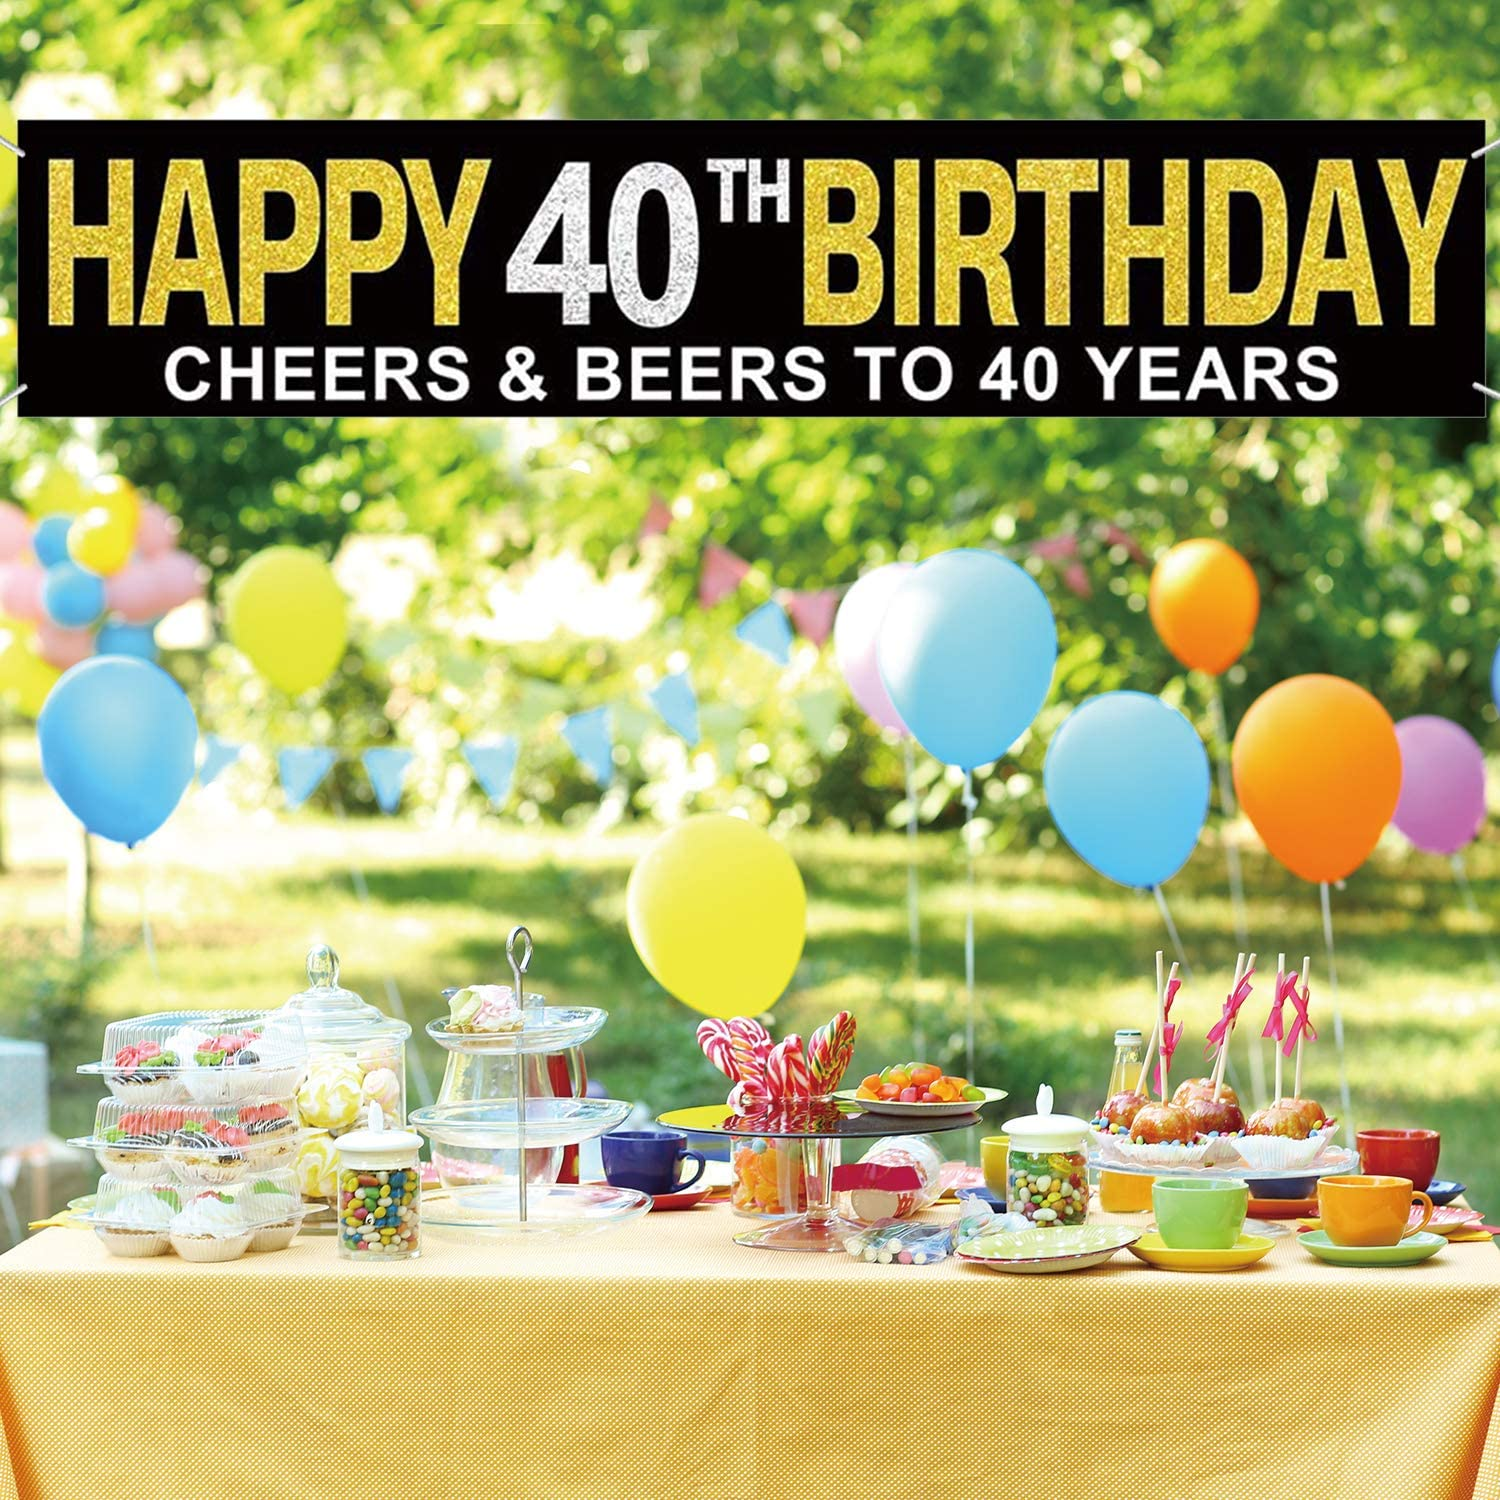 Large Happy 40th Birthday Banner Birthday Hanging Banner Cheers Beers To 40 Years Birthday Party Sign Decorations Home Indoor Outdoor Party Decoration Celebration Flag Birthday Party Supplies Banners Streamers Confetti